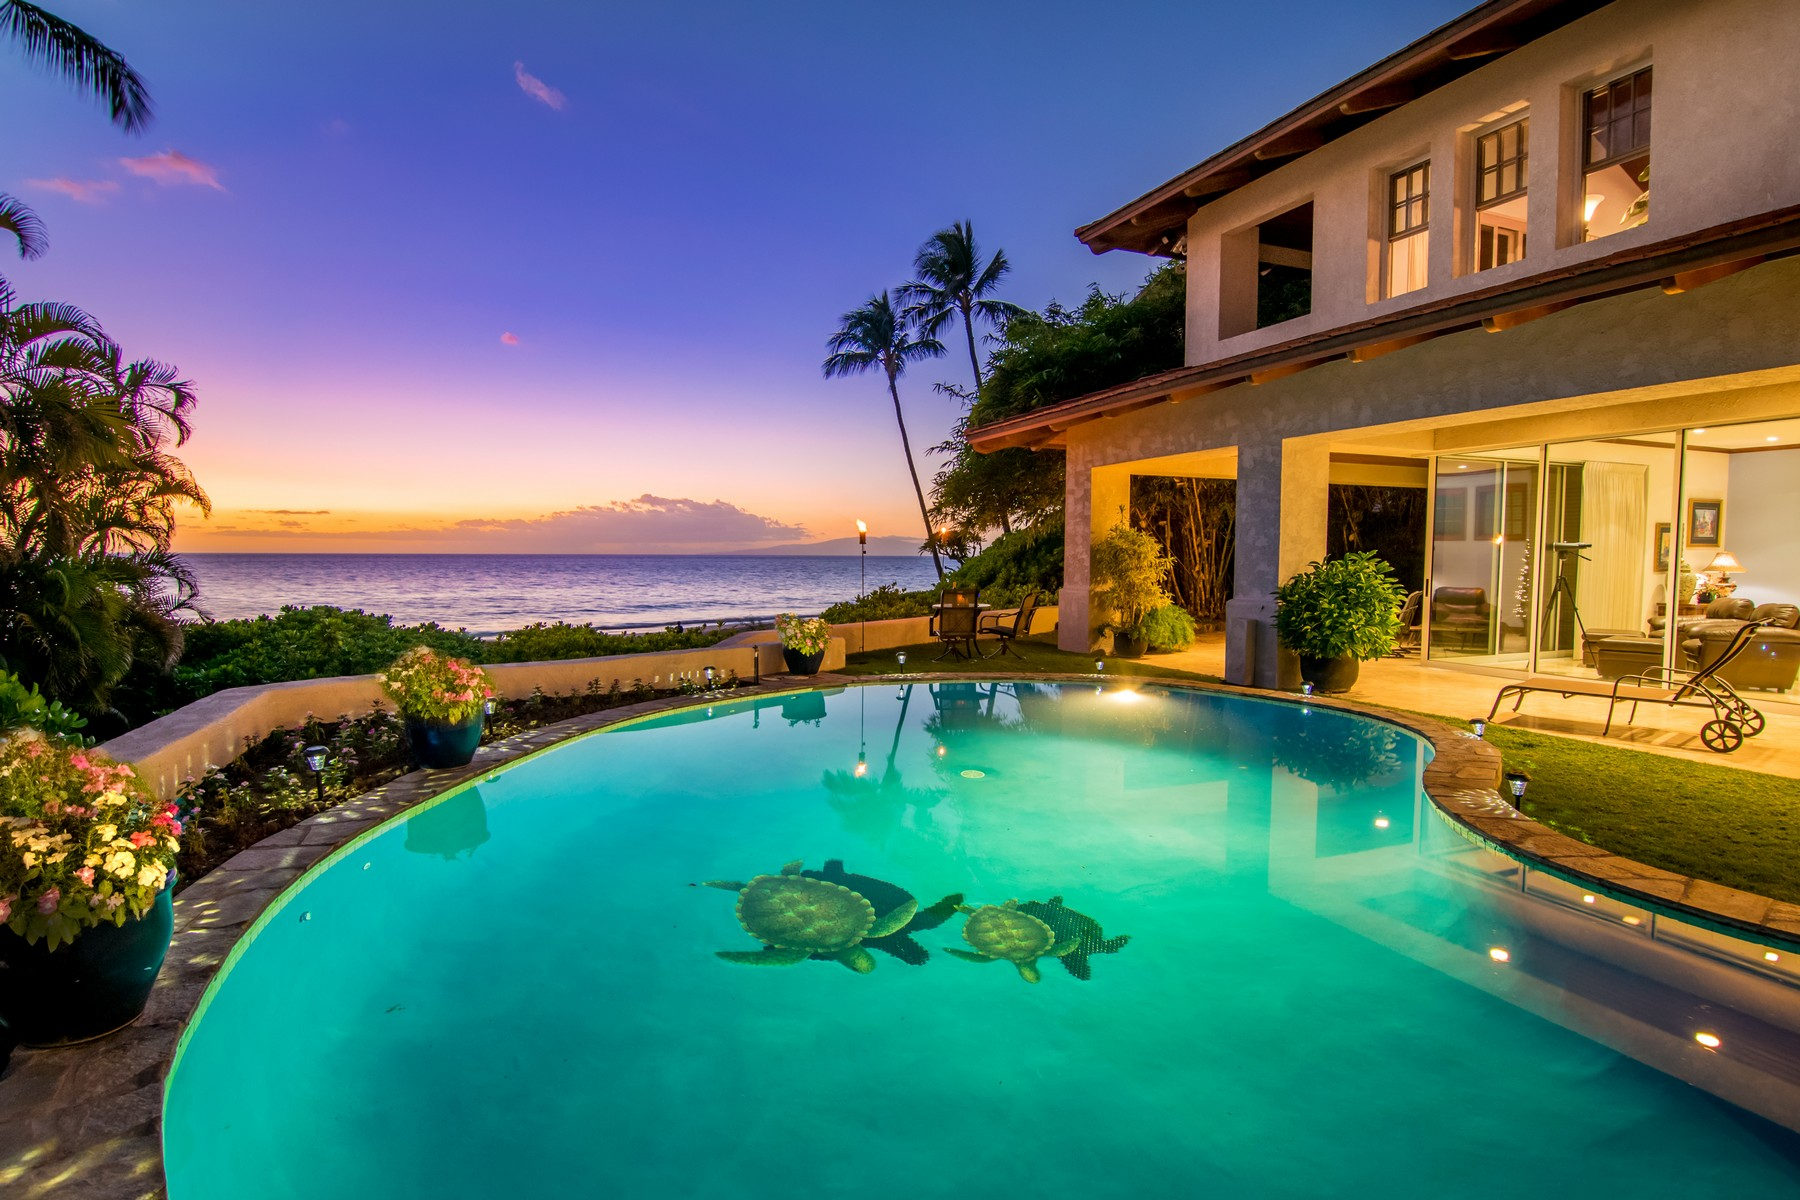 Casa Unifamiliar por un Venta en Elegant Oceanfront Estate On Maui's Finest Sandy Beach 3002 South Kihei Road Kihei, Hawaii, 96753 Estados Unidos